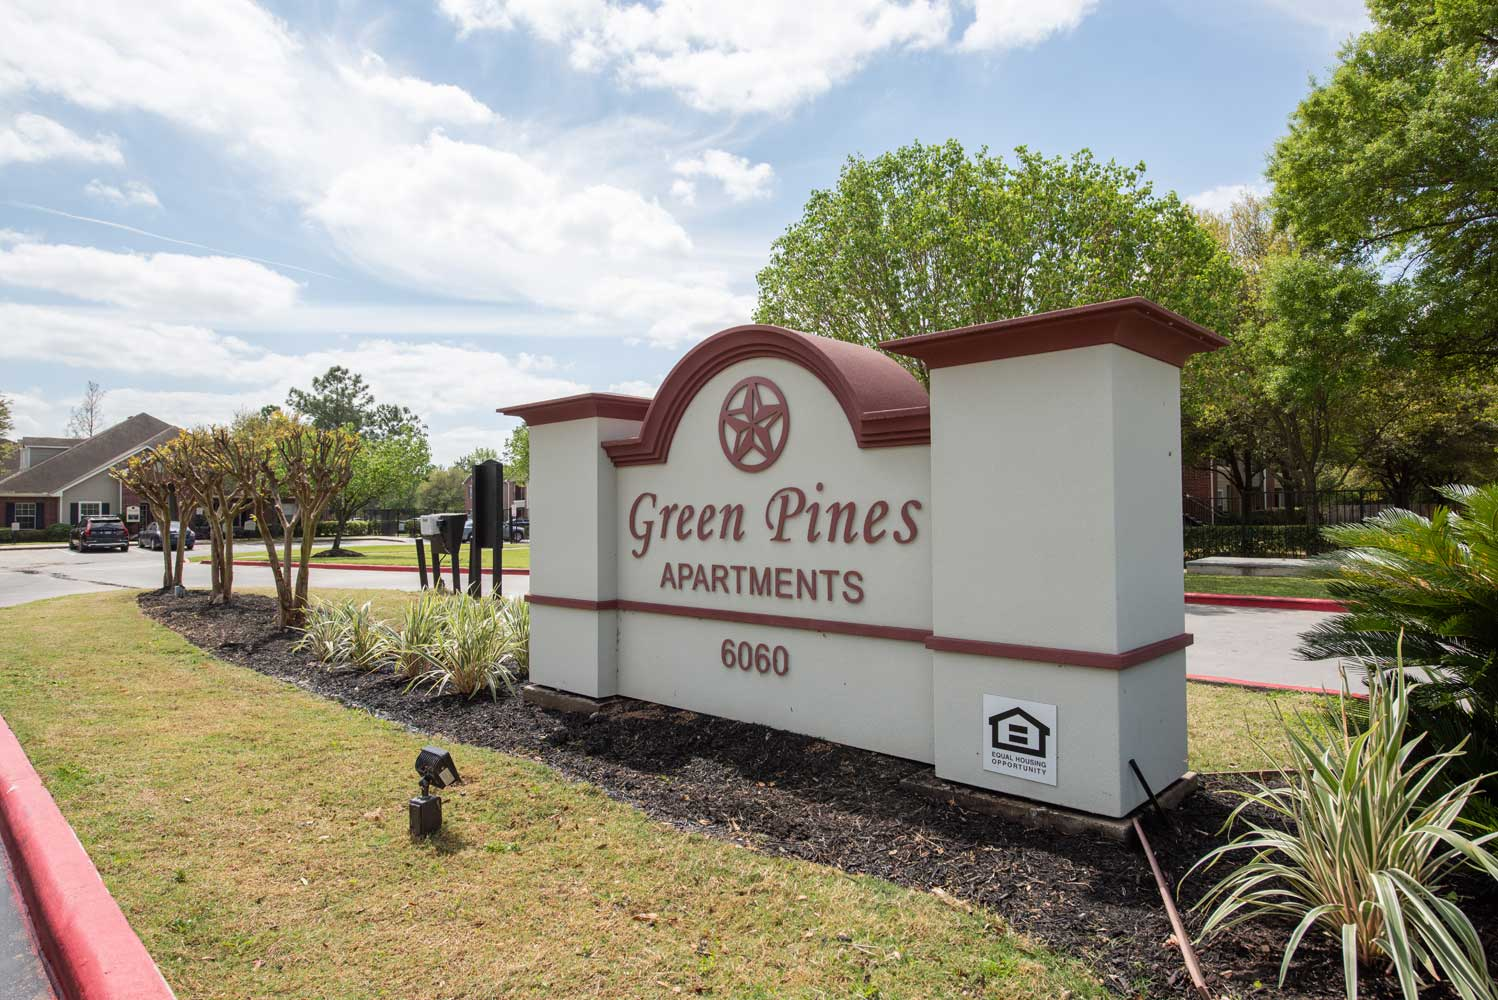 Image of Greens Pines Apartments in Humble, Texas